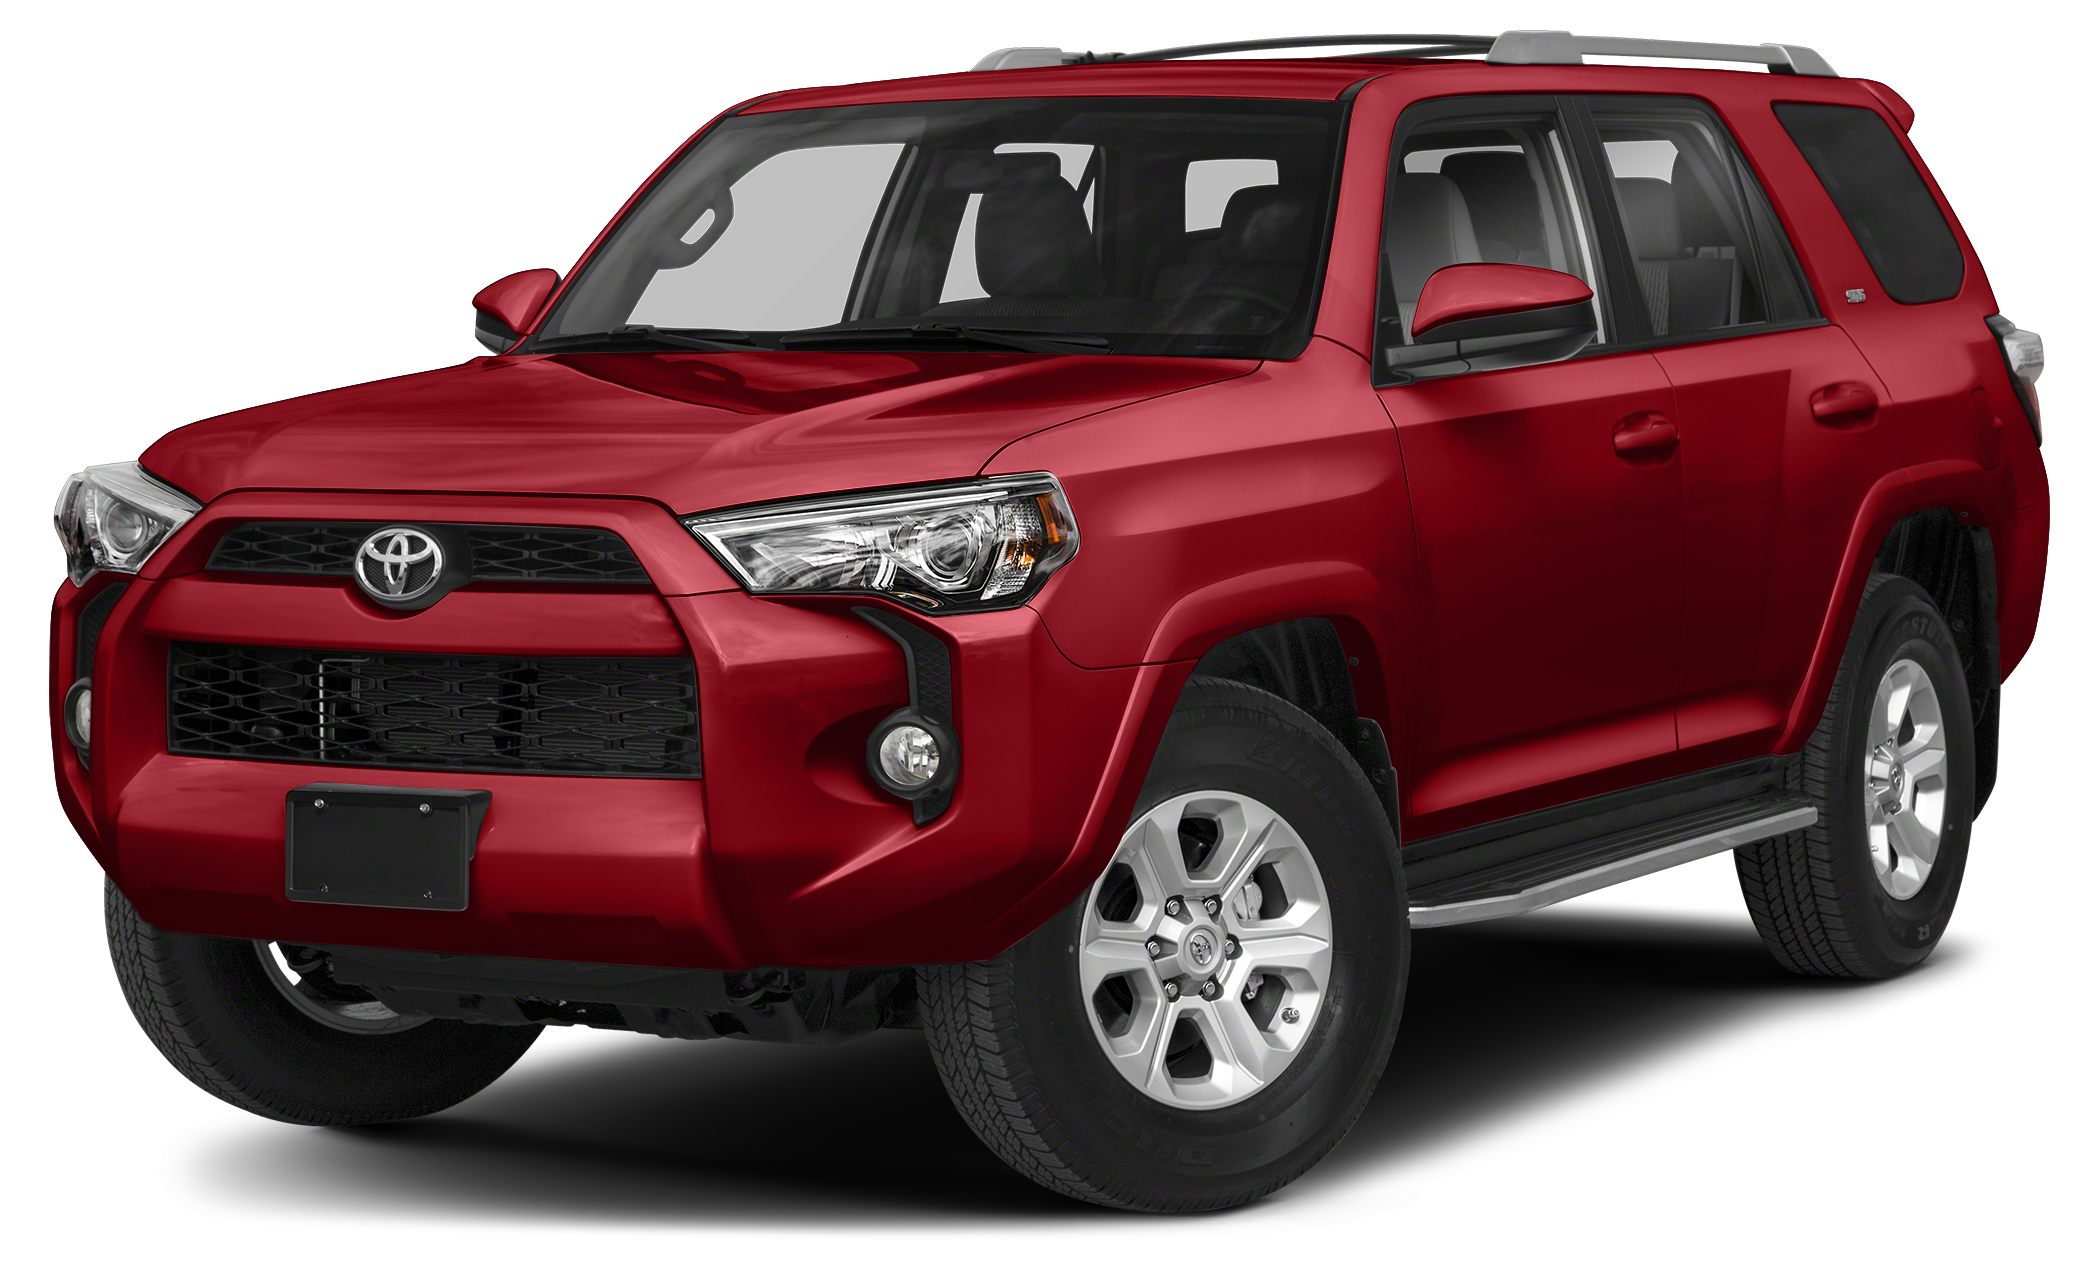 2017 Toyota 4Runner  Miles 9Color Barcelona Red Stock TT4682 VIN JTEBU5JR7H5474271